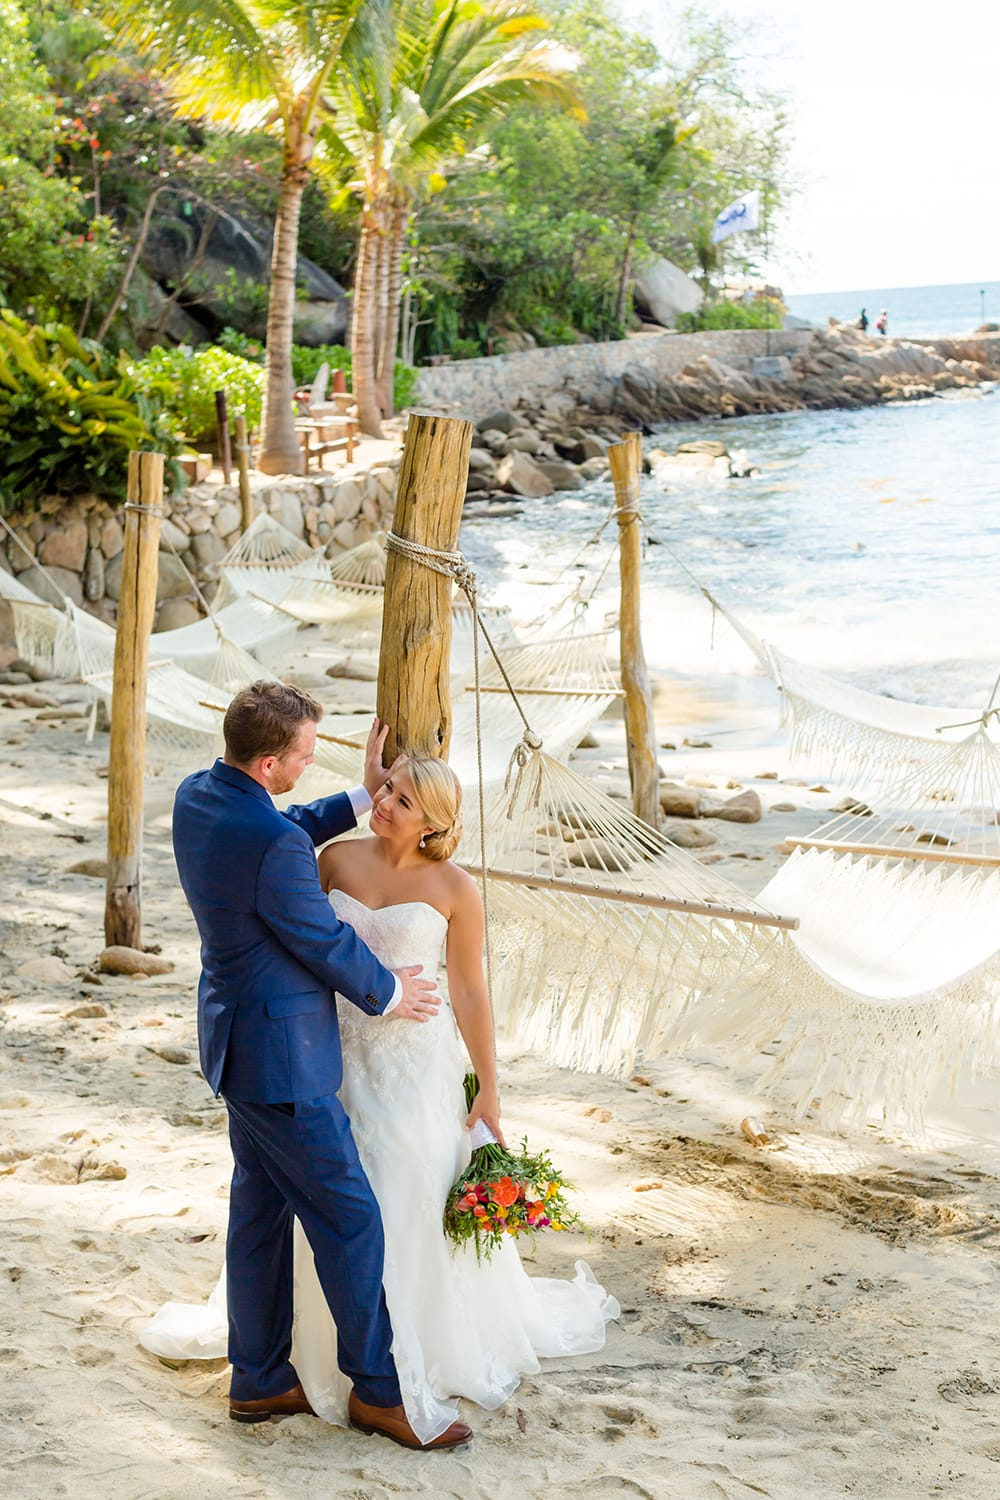 Adorable first look taking place in front of hammocks and the ocean at Adventure Weddings private beach venue